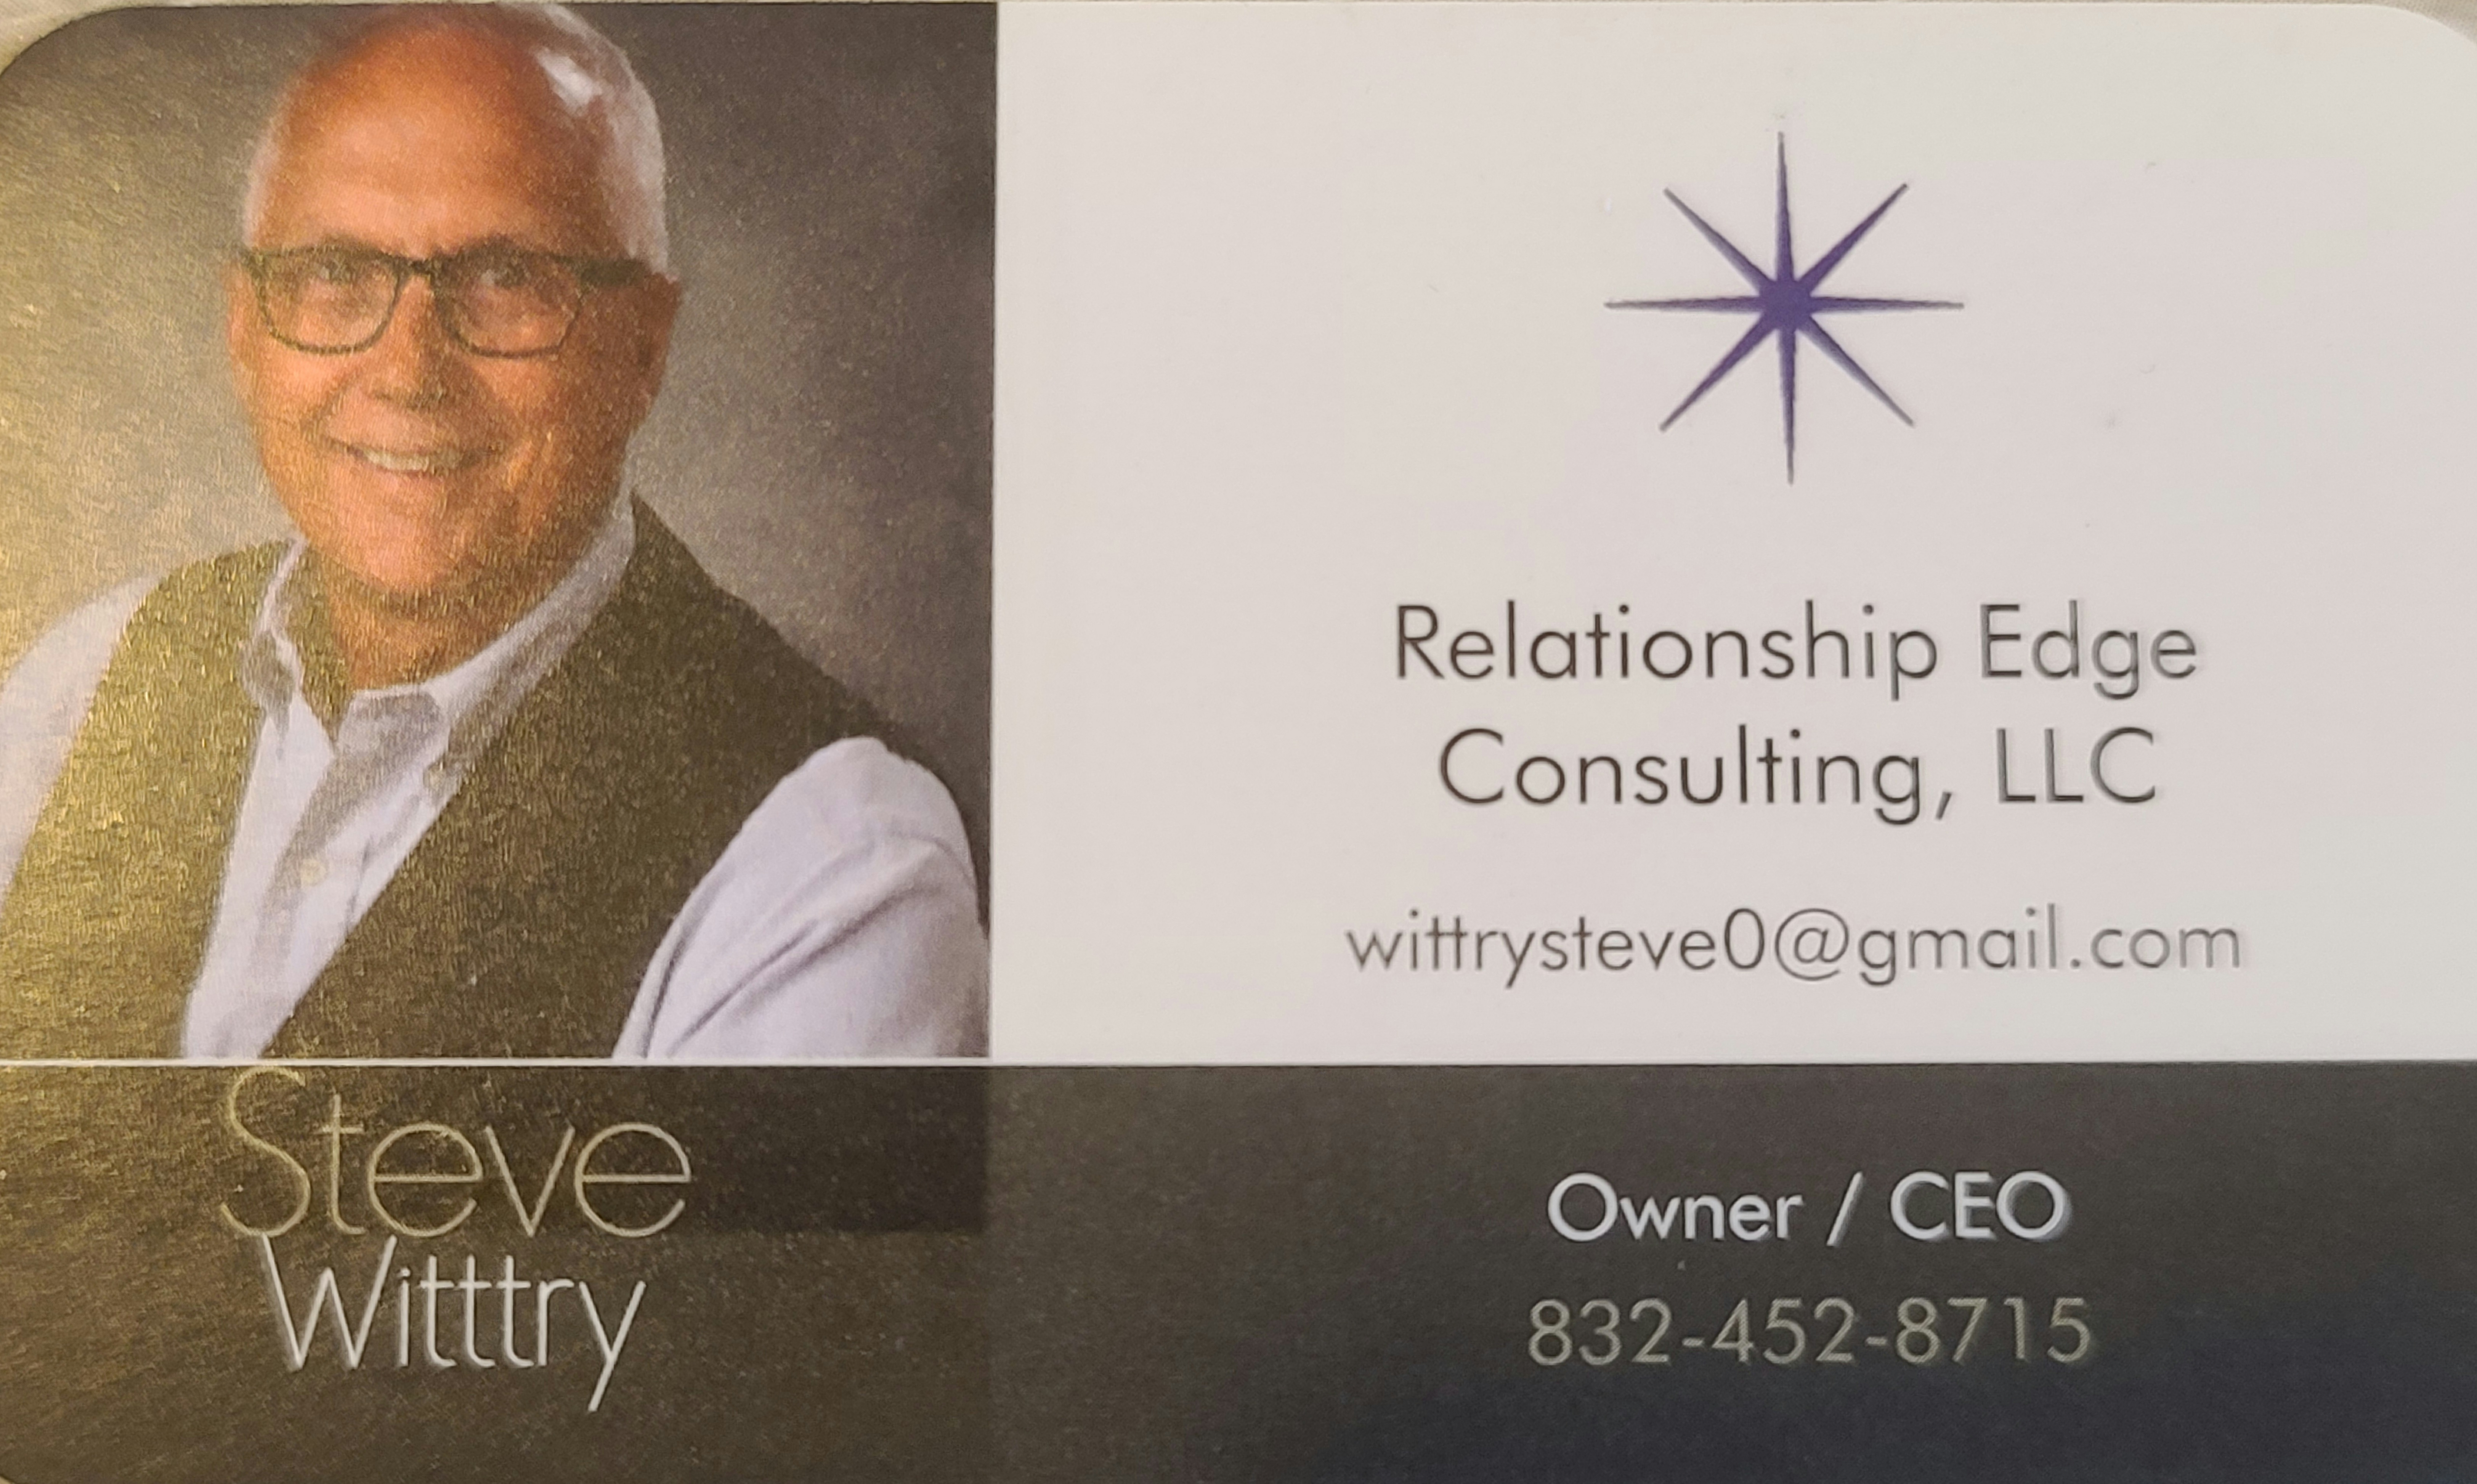 Relationship Edge Consulting